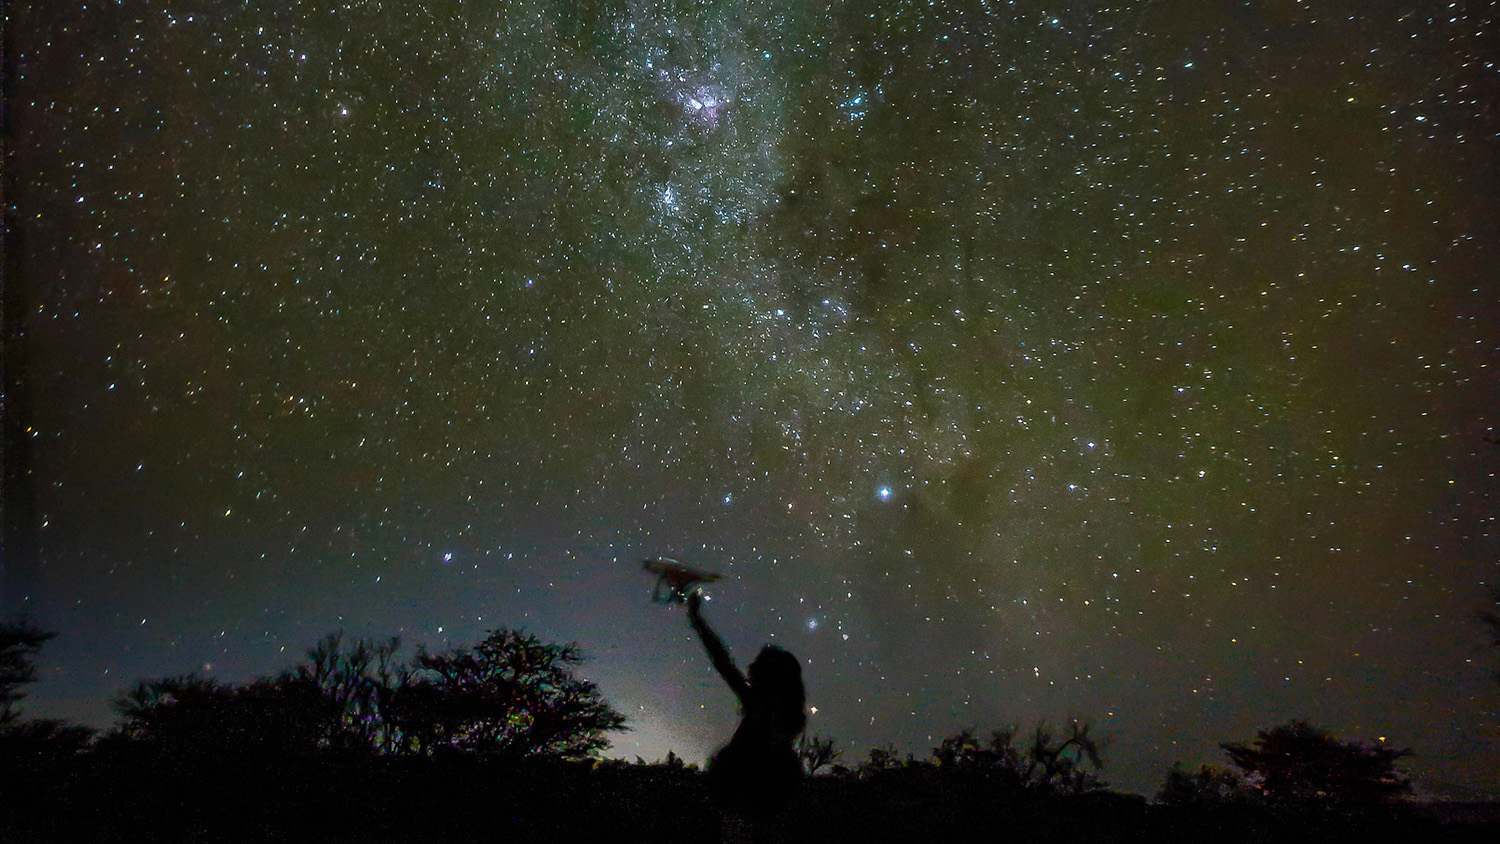 A researchers studying how drones can detect poachers and count wildlife in Namibia is juxtaposed against the Milky Way at night.